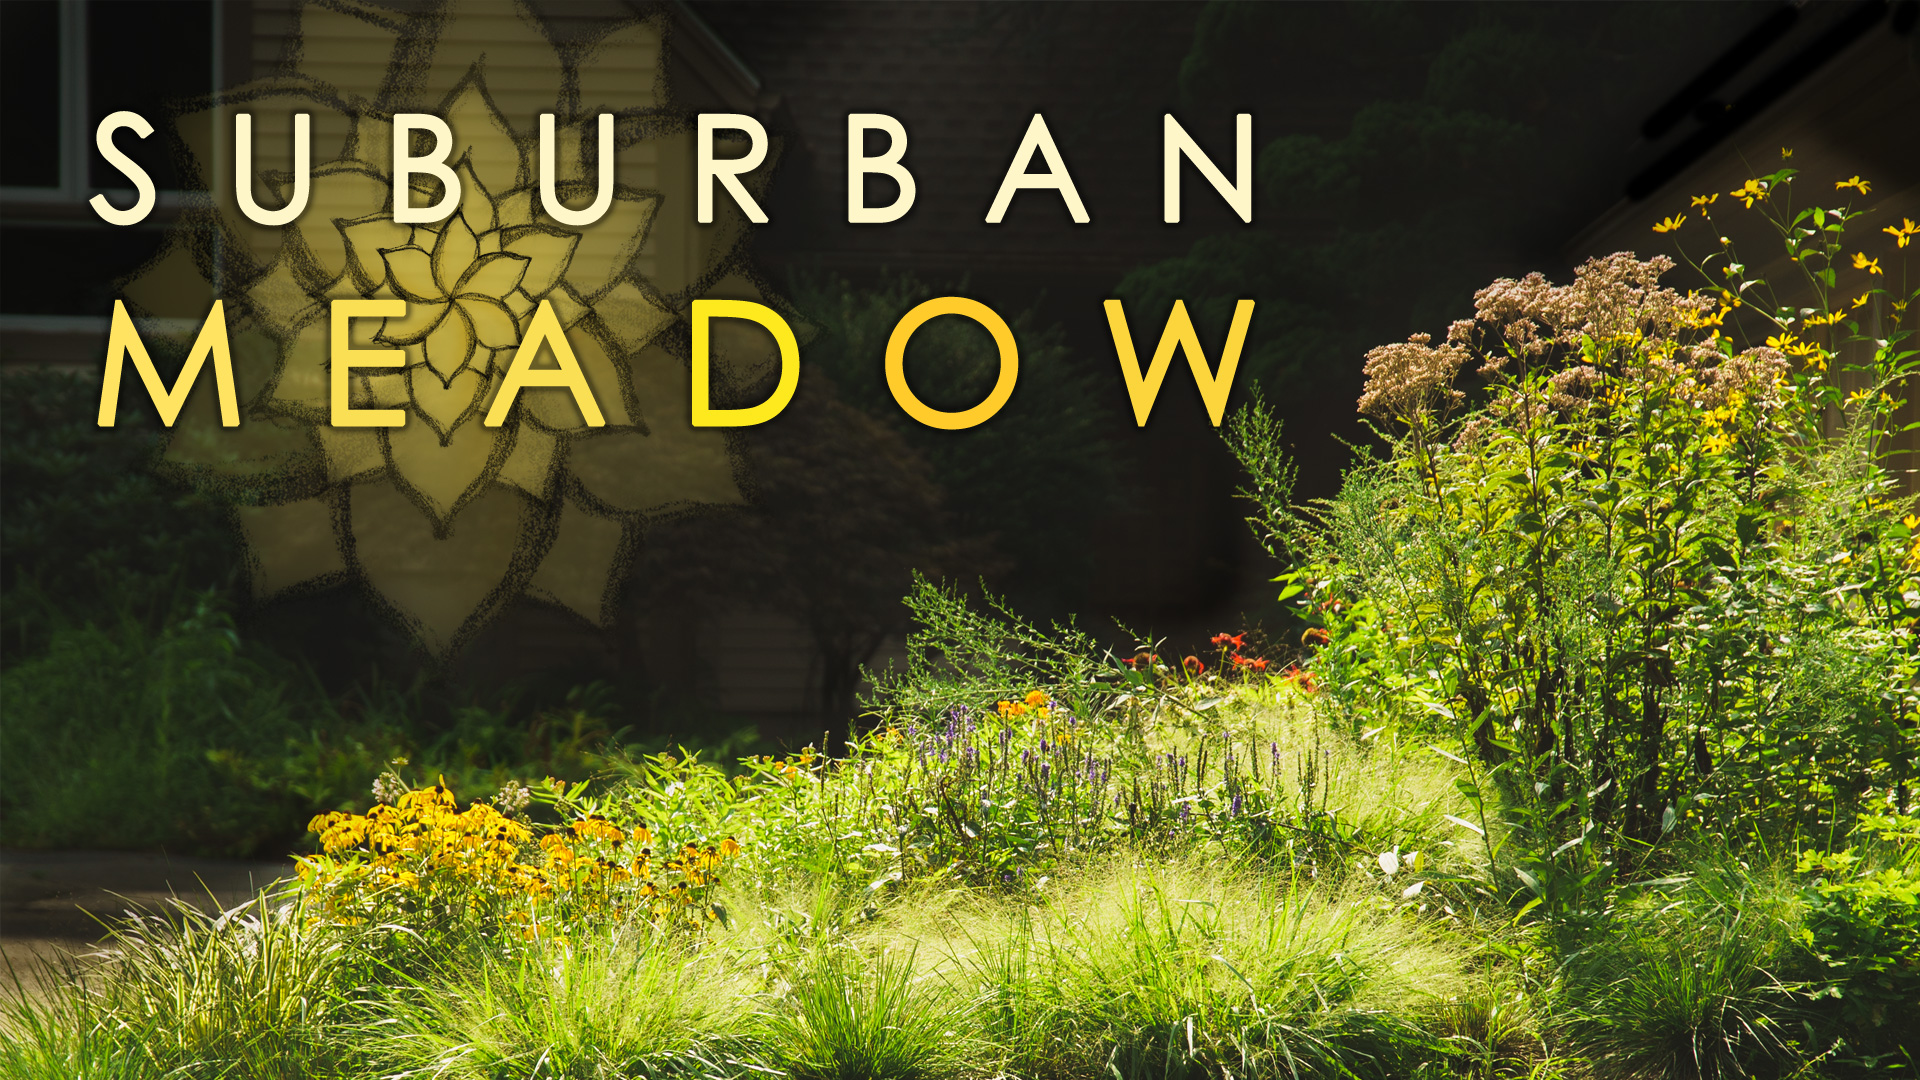 Future Presentations - Suburban Meadow will focus on bringing meadows into the suburban landscape and how to design and create beautiful, natural, and functionally important gardens for our pollinators.Available late 2019/early 2020.